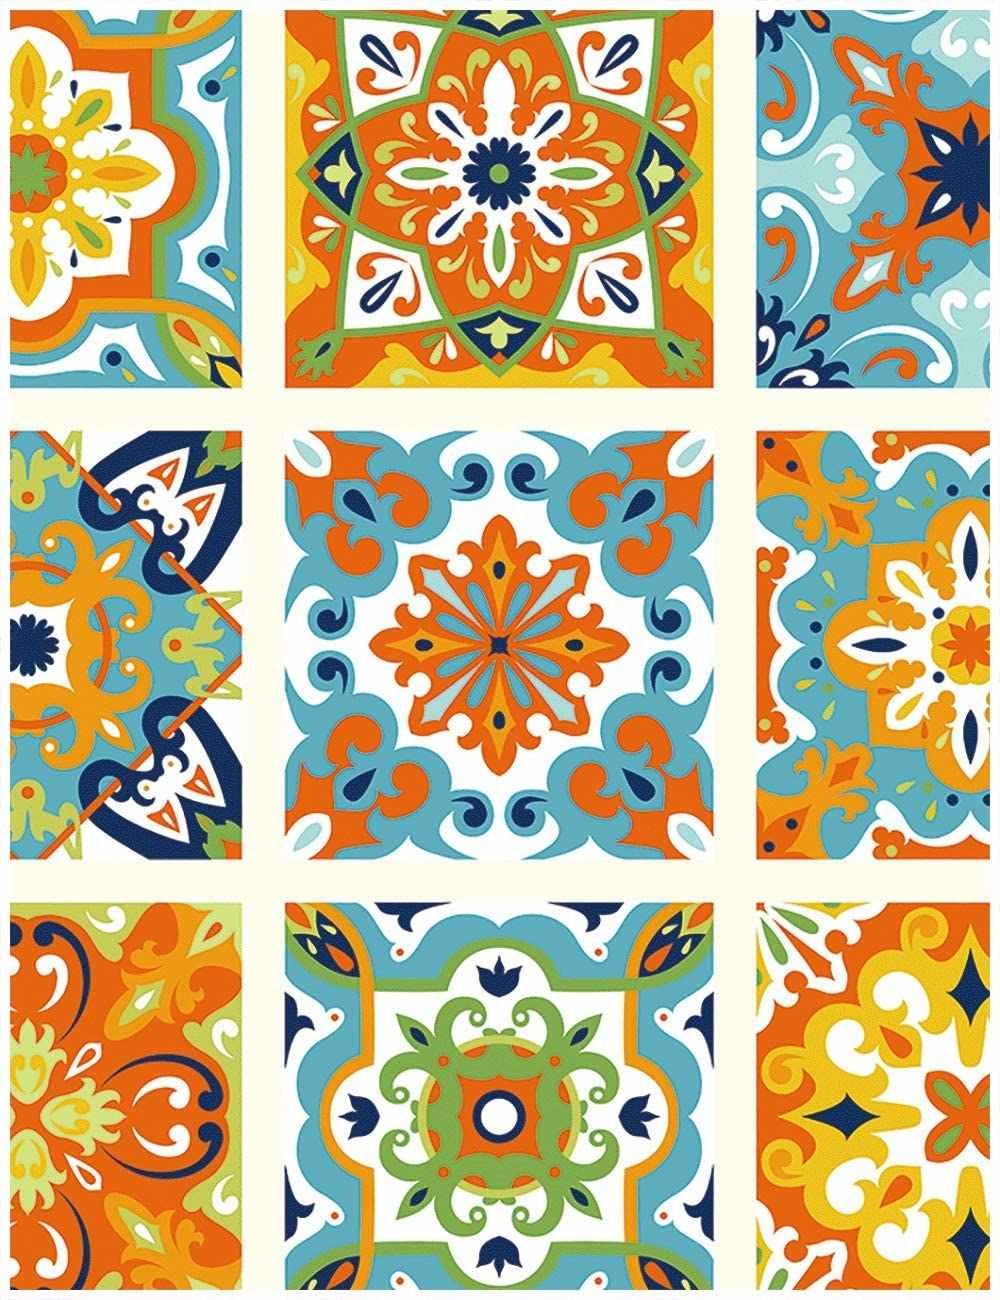 thick peel and stick tile moroccan tile pattern wallpaper vinyl self adhesive contact paper decorative for walls bedroom kitchen